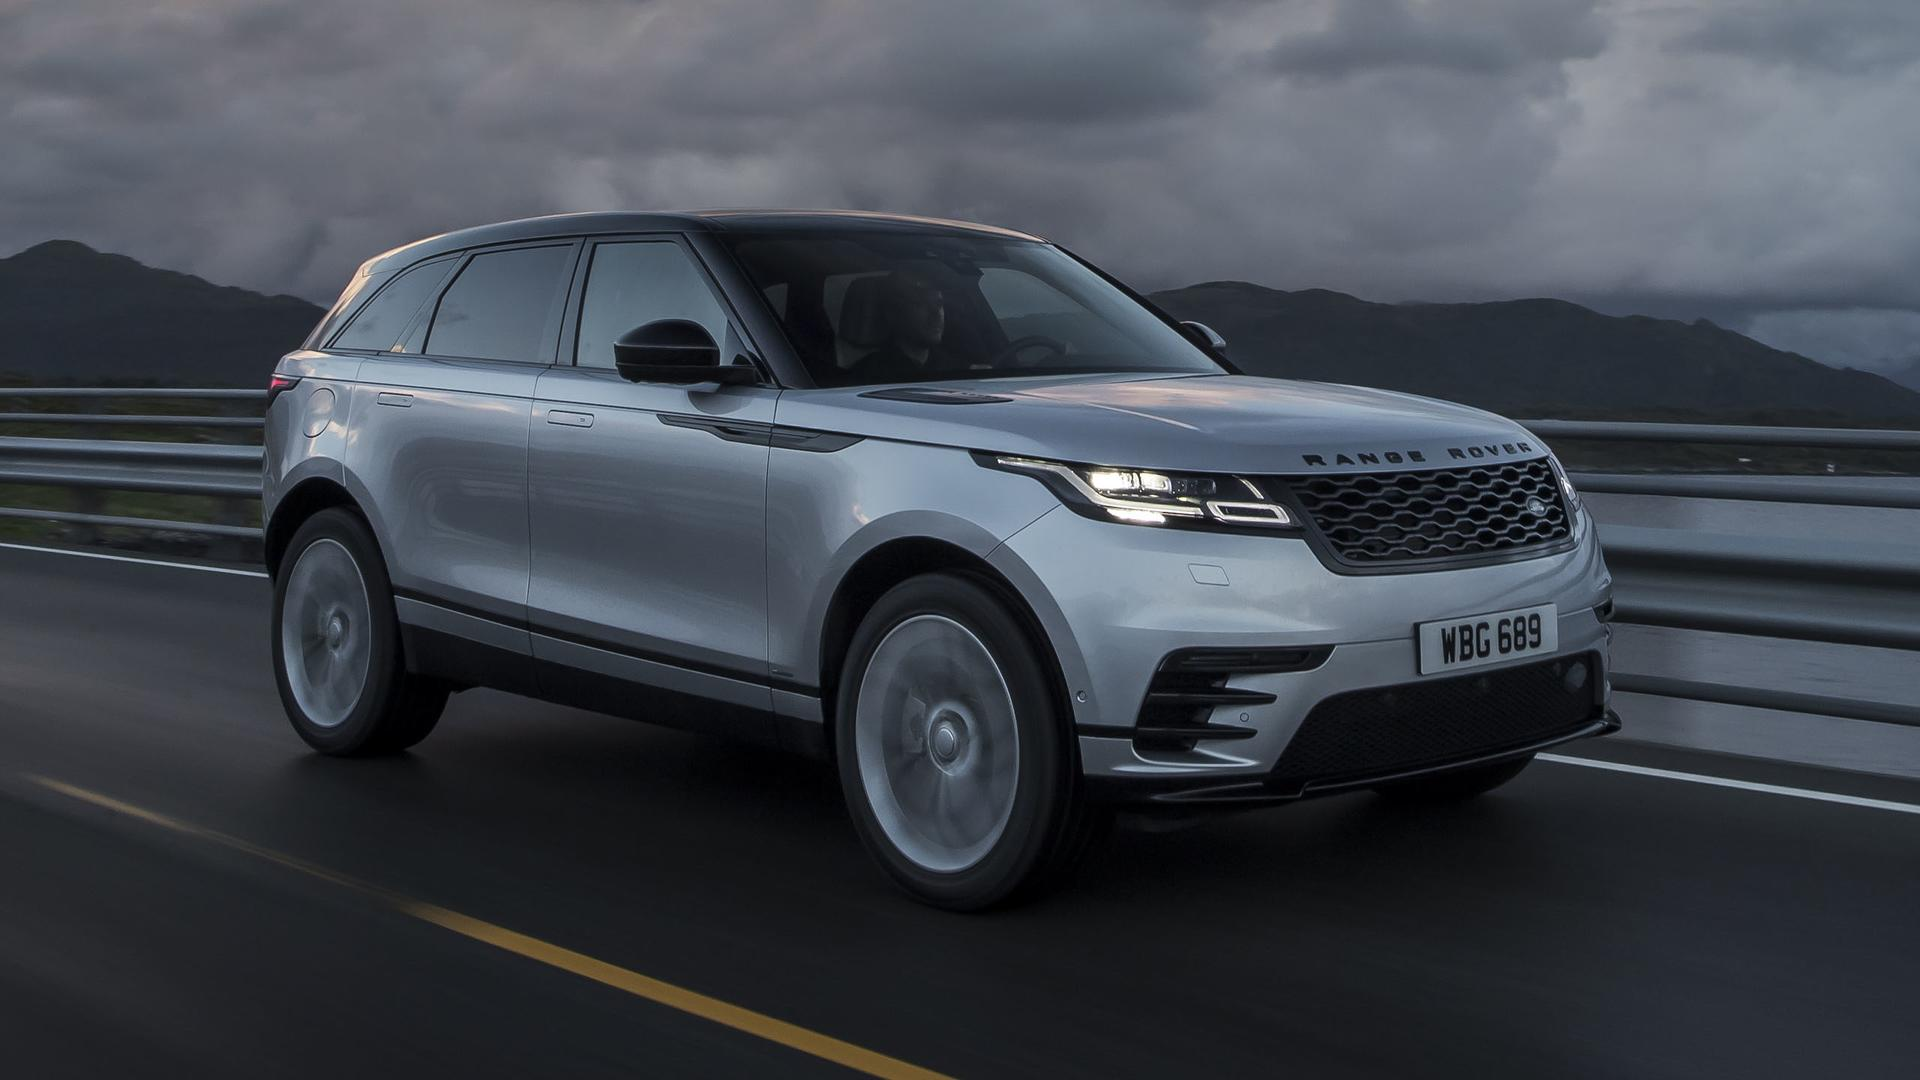 land rover range rover velar news and reviews. Black Bedroom Furniture Sets. Home Design Ideas